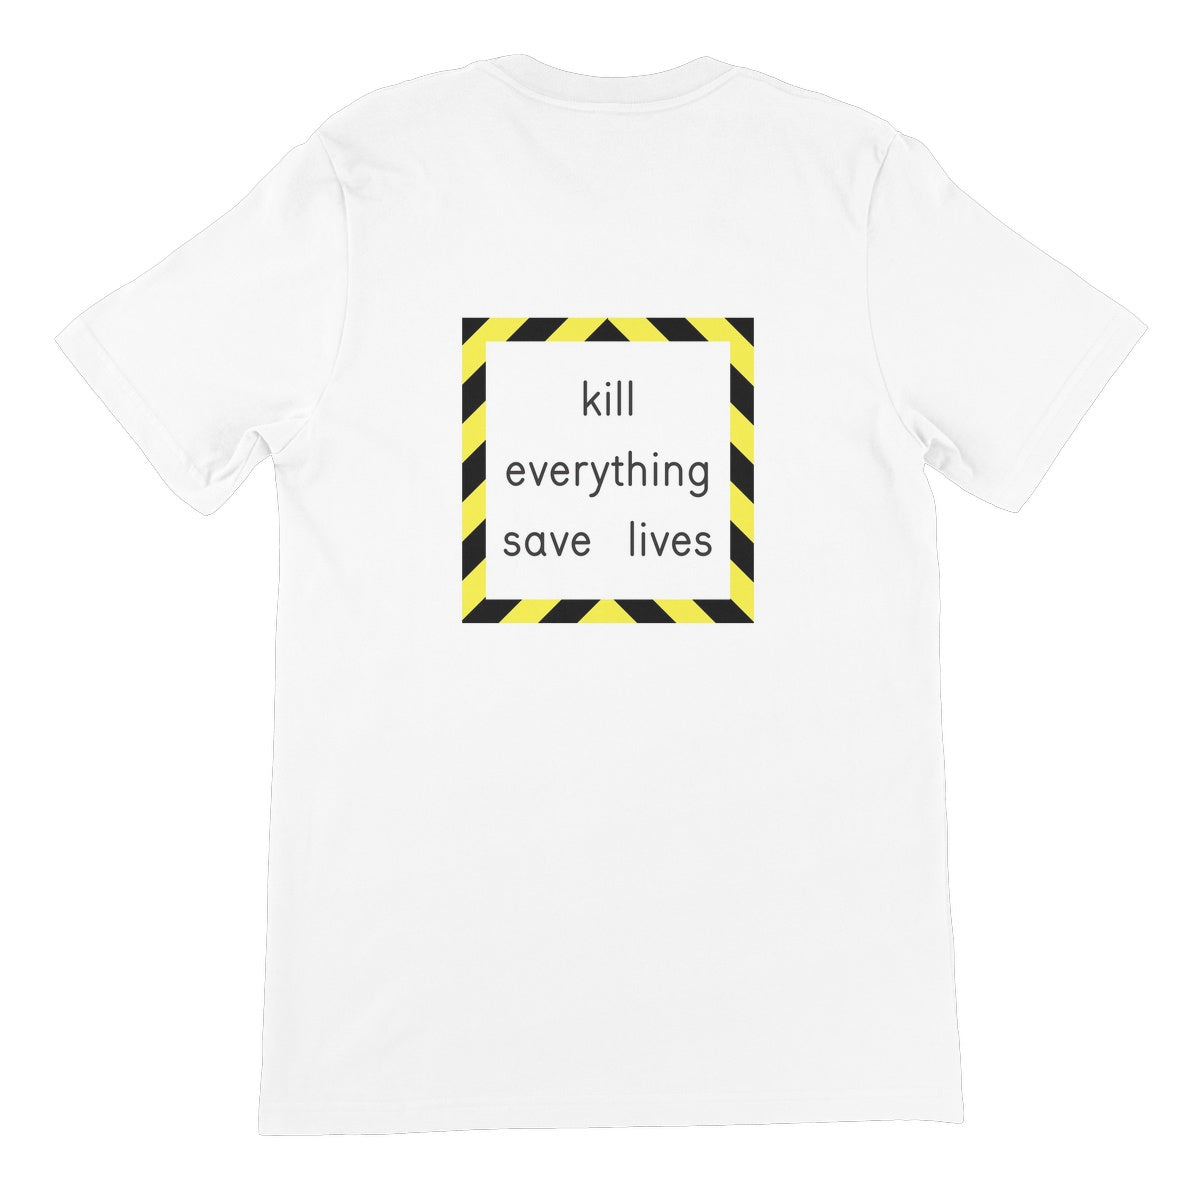 'Kill Everything Save Lives' by Miriam Elia from the best-selling book Let's Do Lockdown.